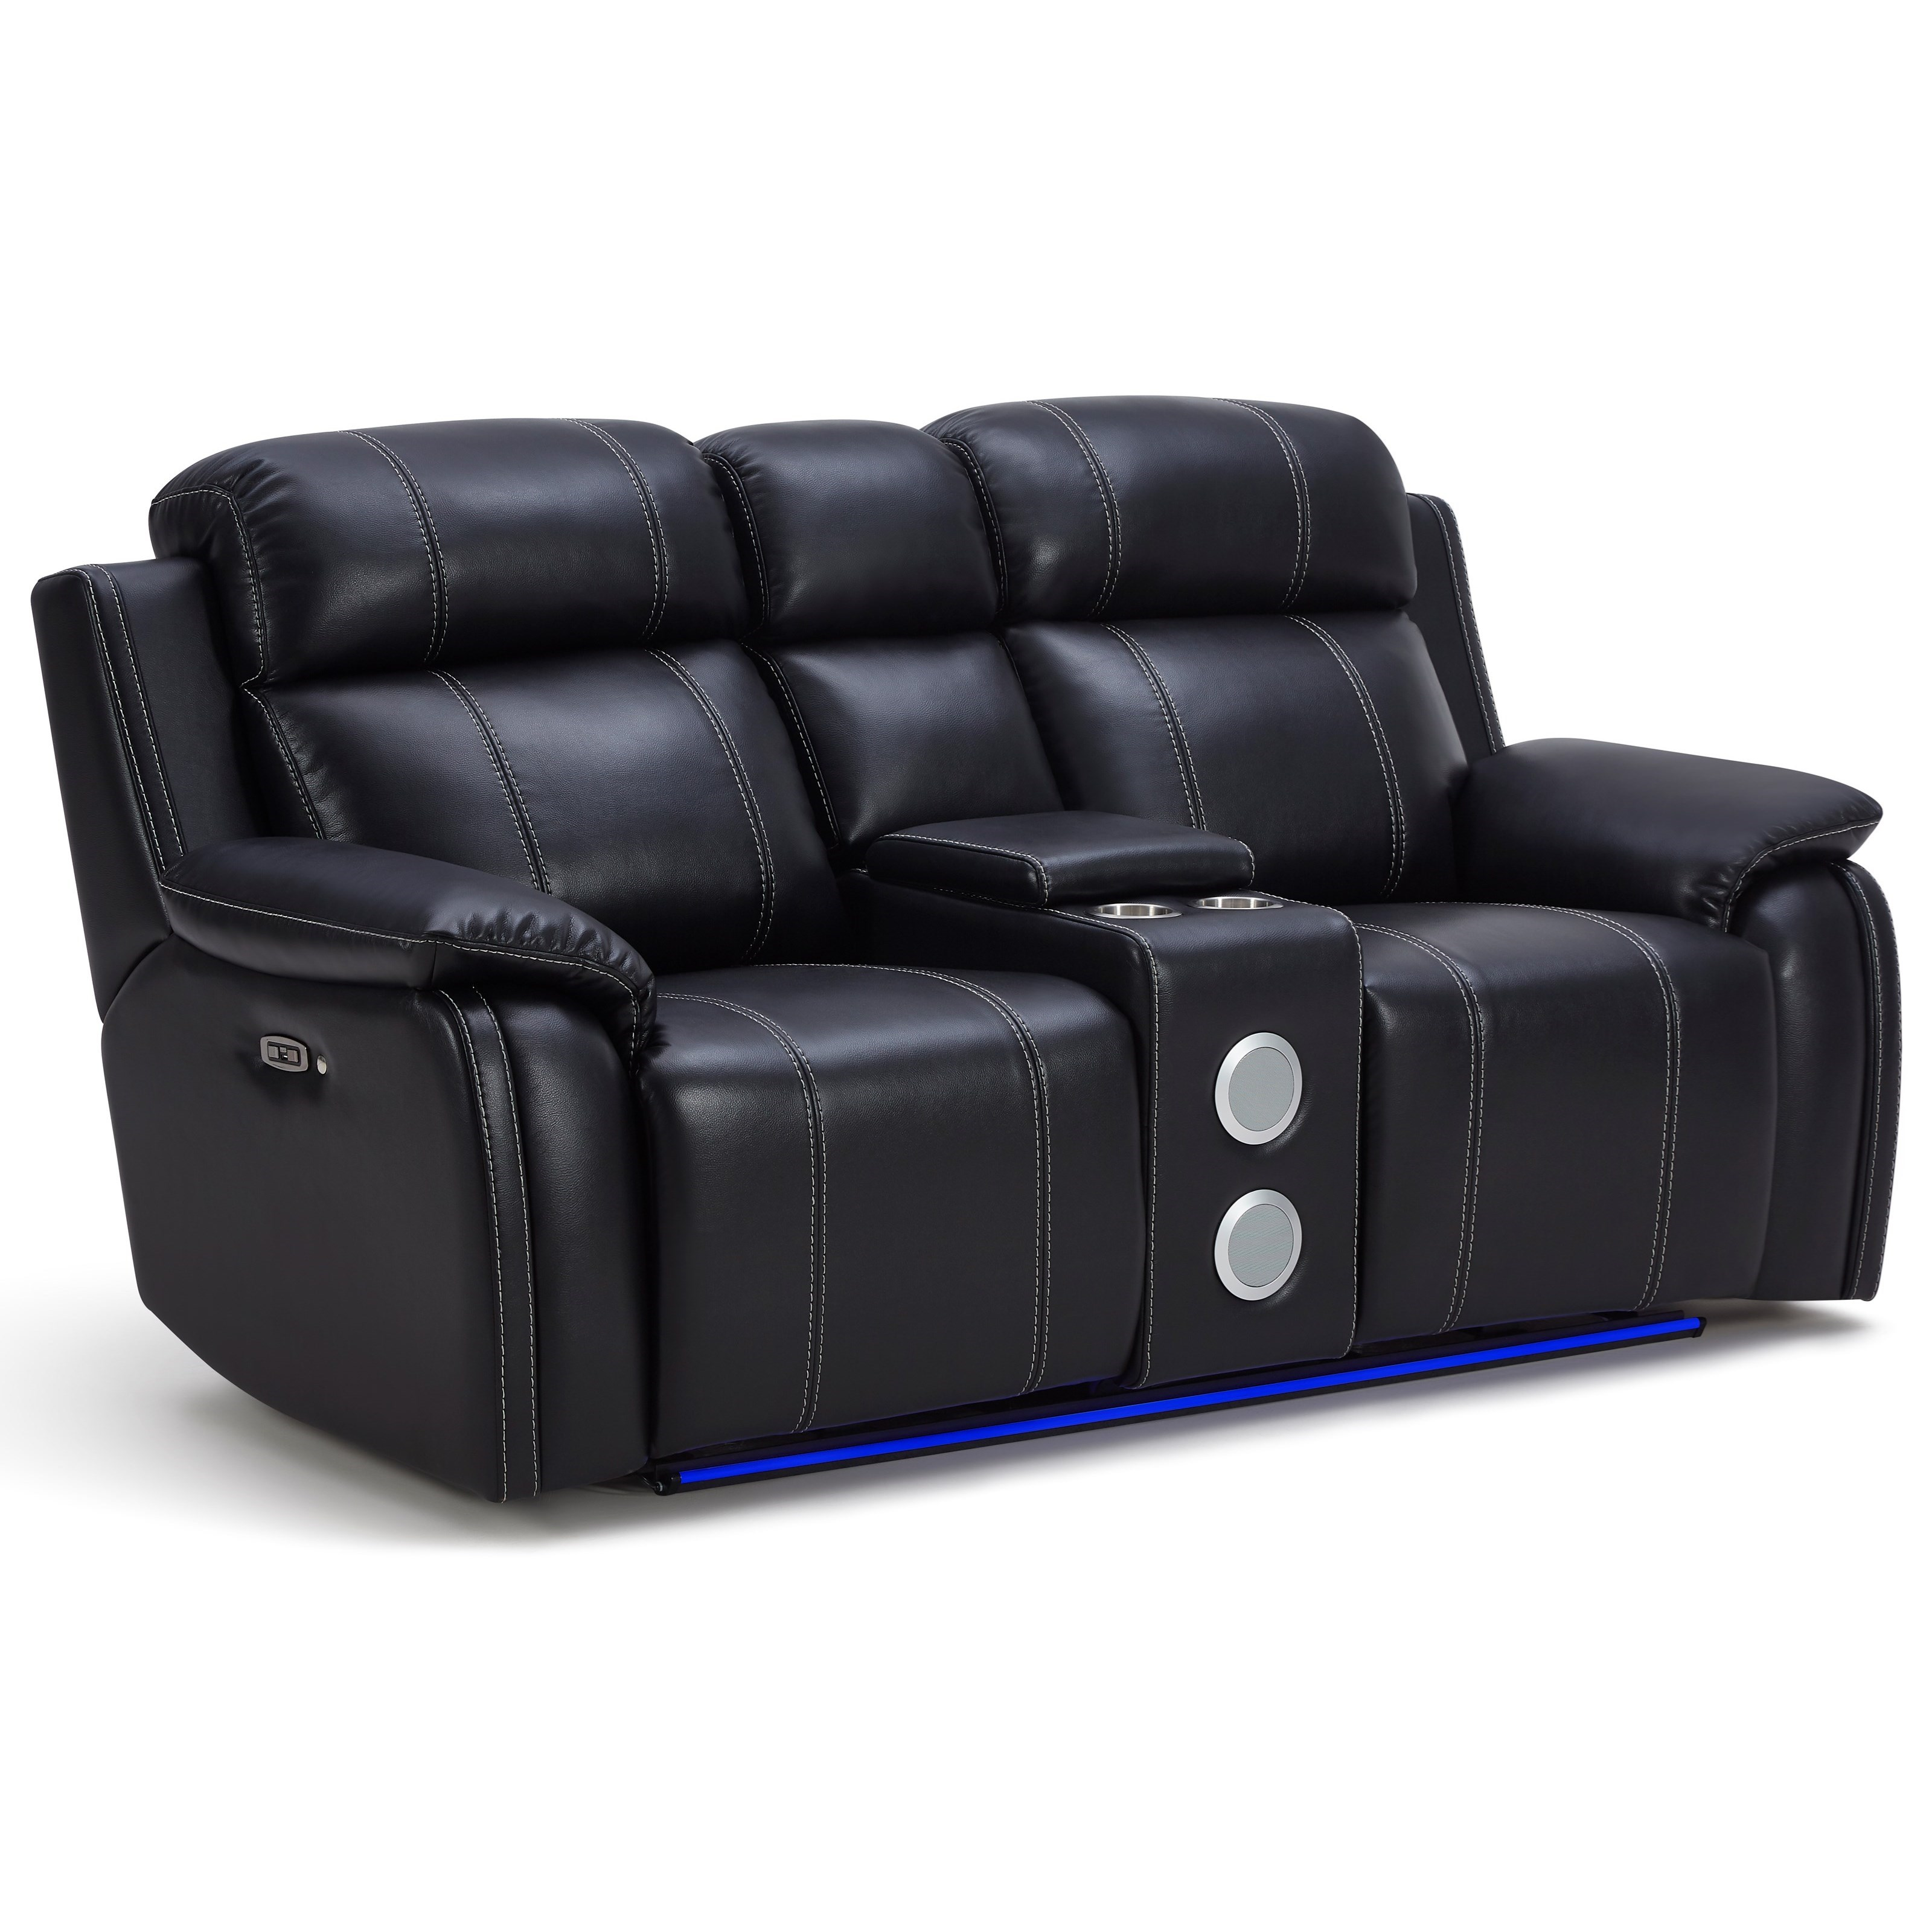 New Classic Fusion Reclining Console Loveseat With Speaker And Cup Holders Wilcox Furniture Reclining Loveseats